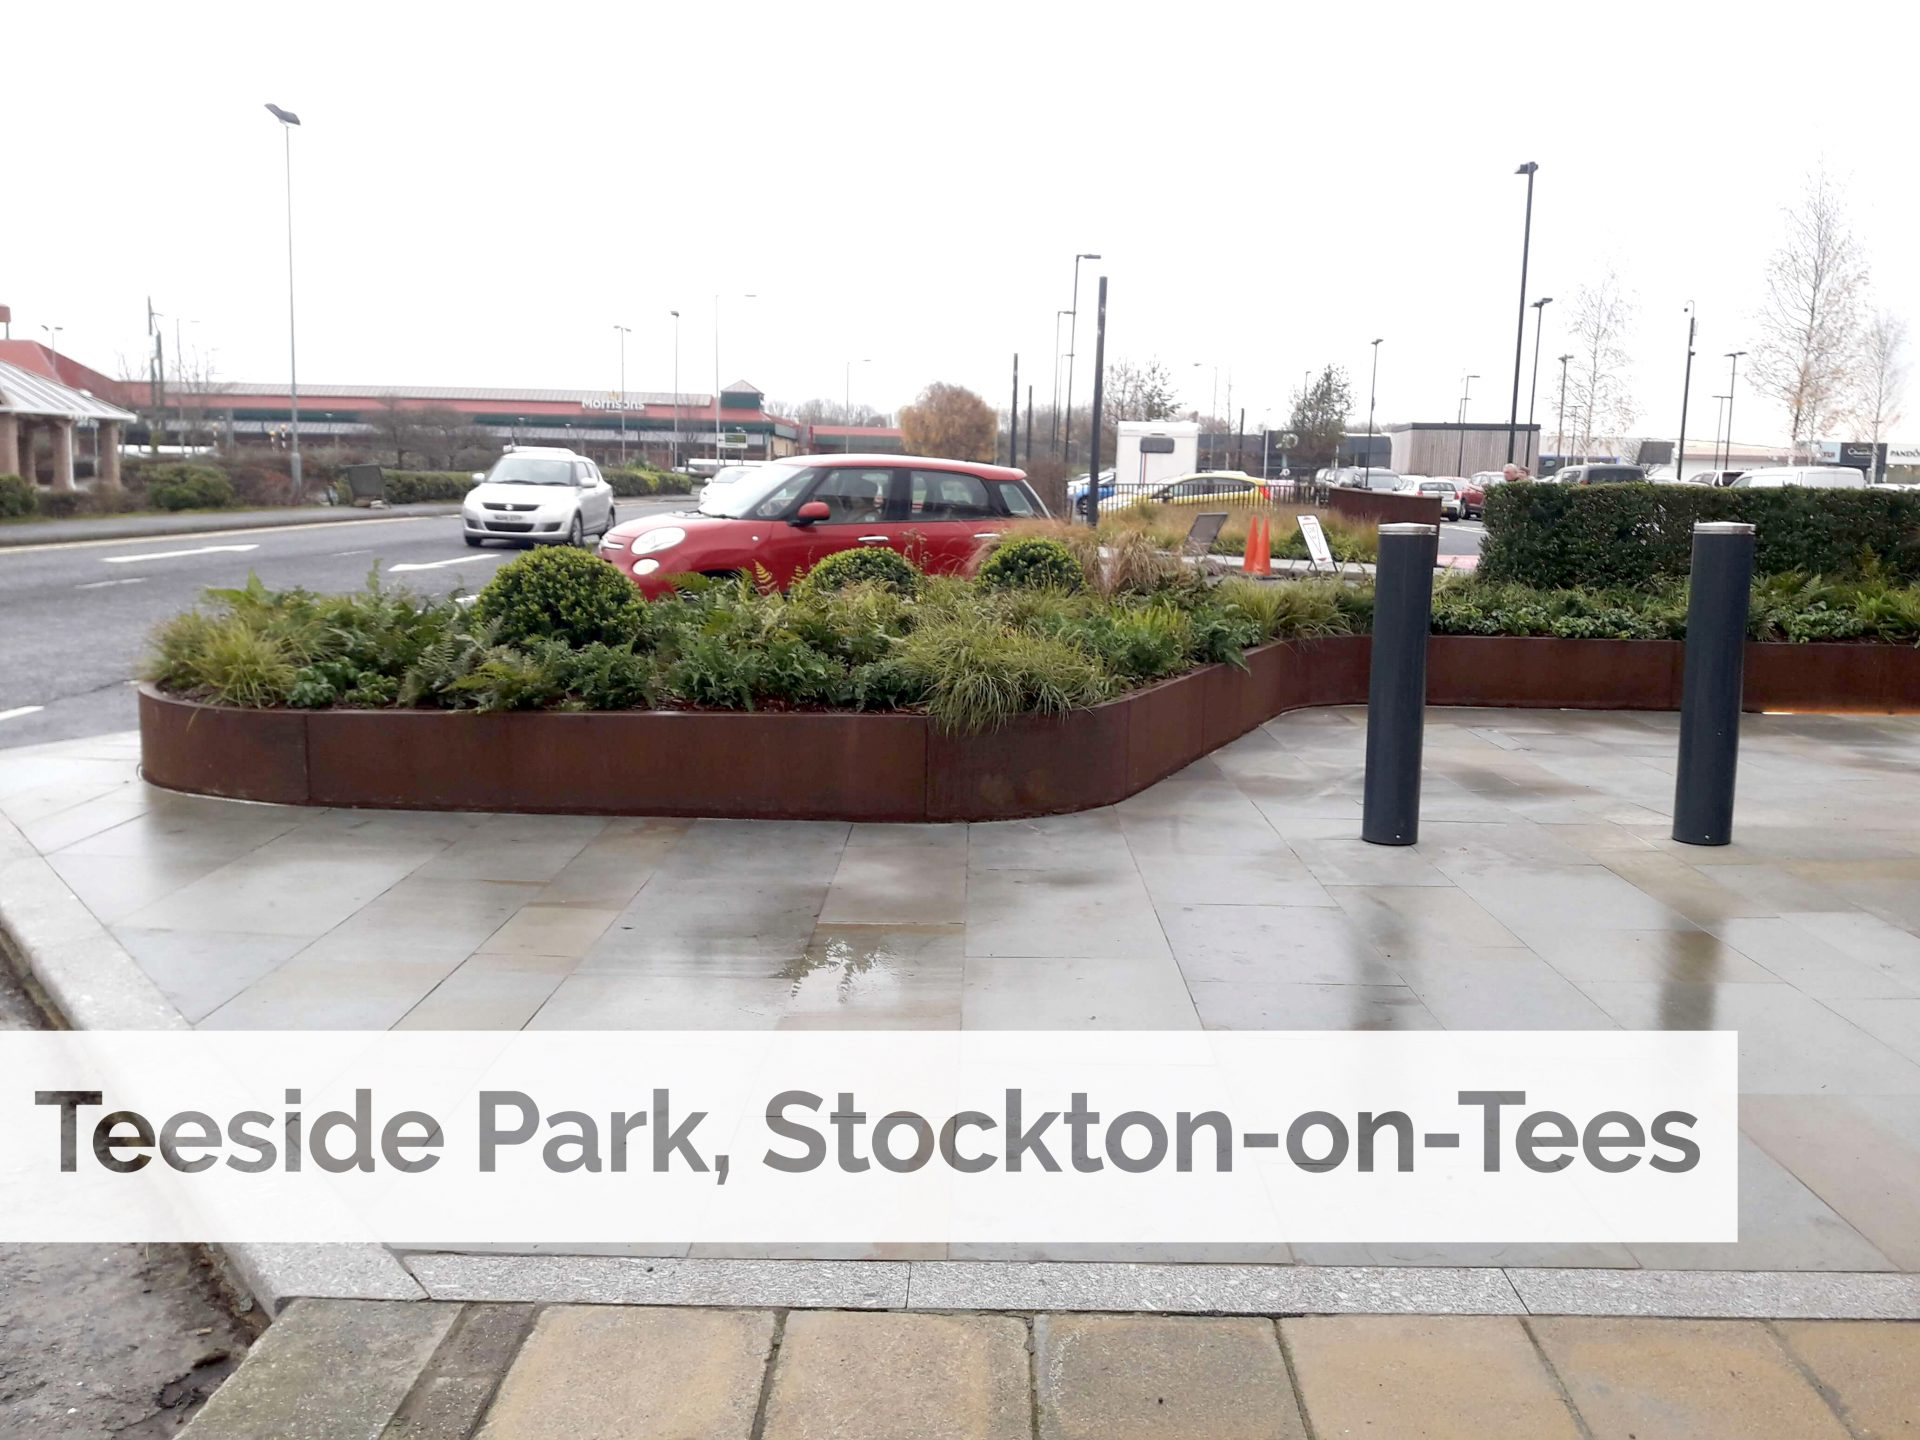 Plant supply to help create green oasis at Teeside Park